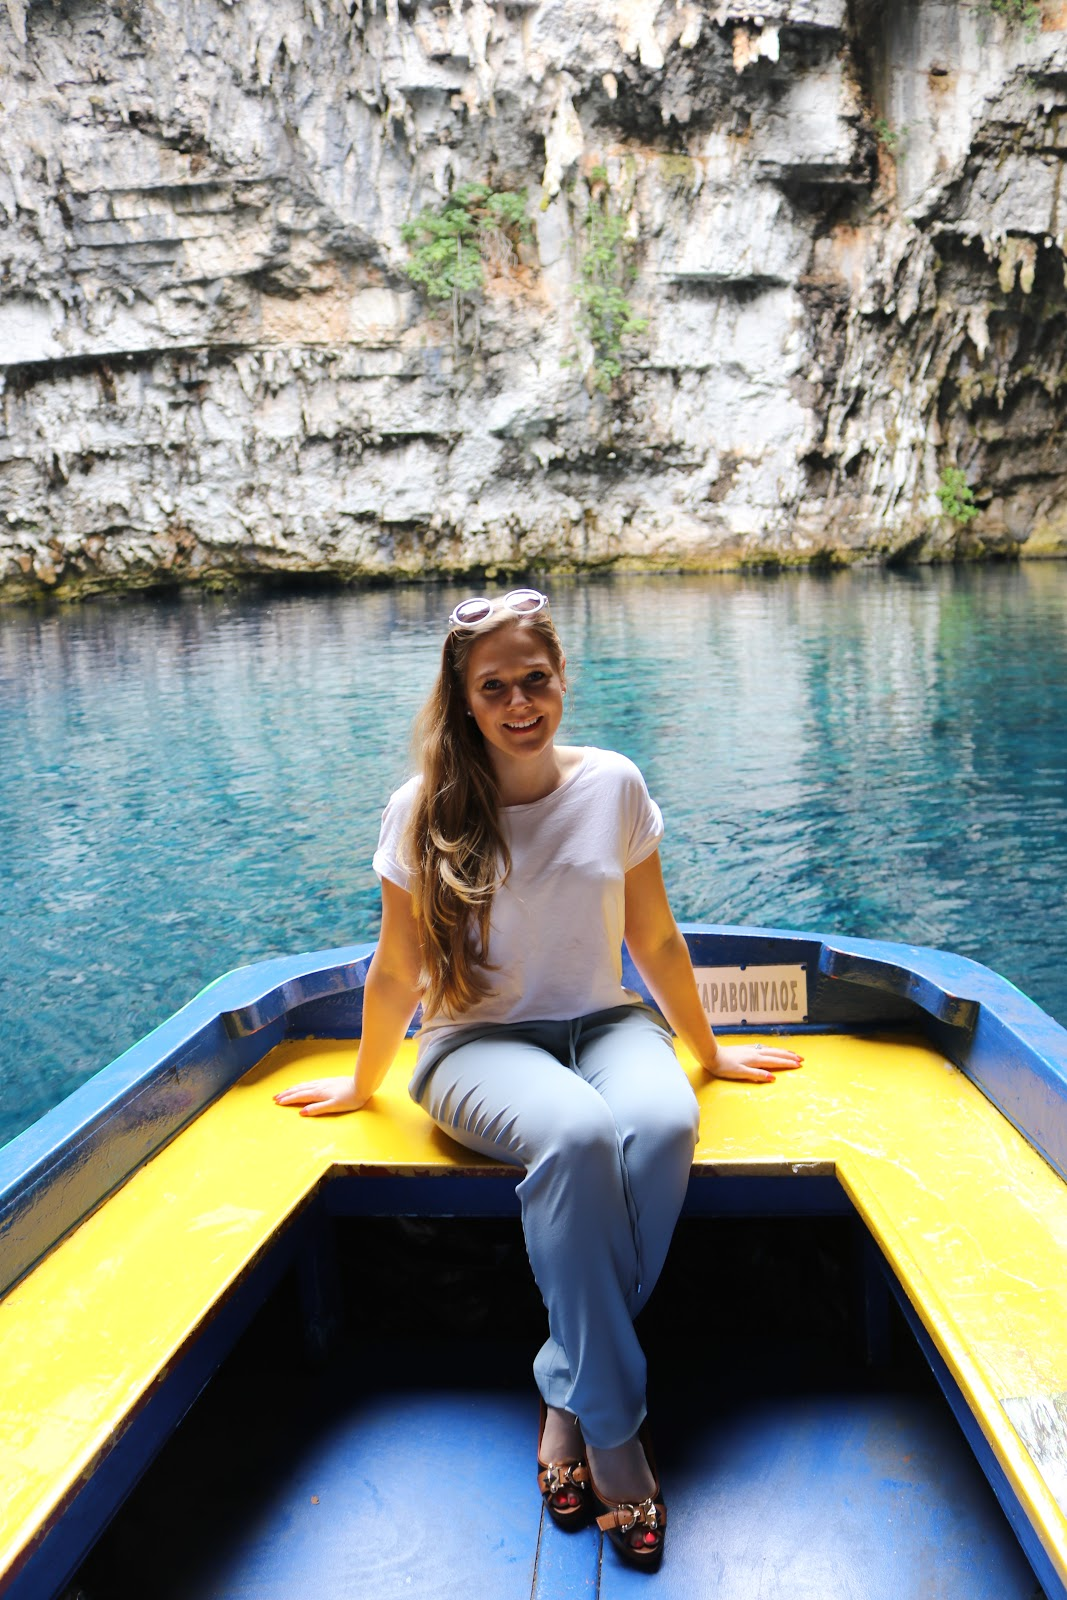 Blonde girl wearing white t shirt and blue trousers in a boat in Melissani Cave, Kefalonia